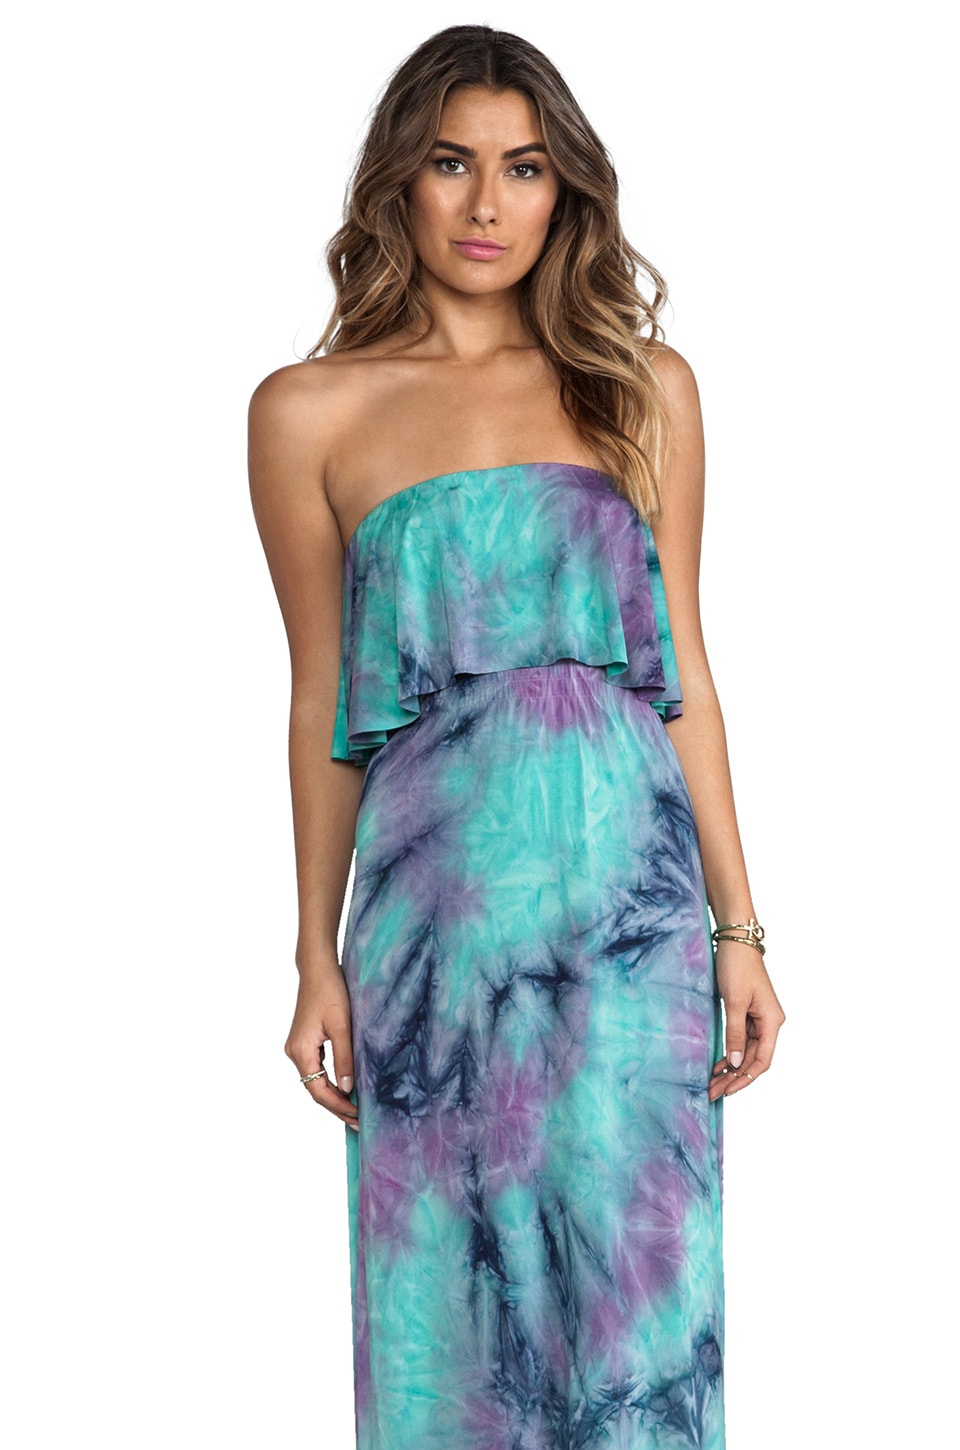 T-Bags LosAngeles Strapless Tiered Maxi in Lavender Mix Tie Dye